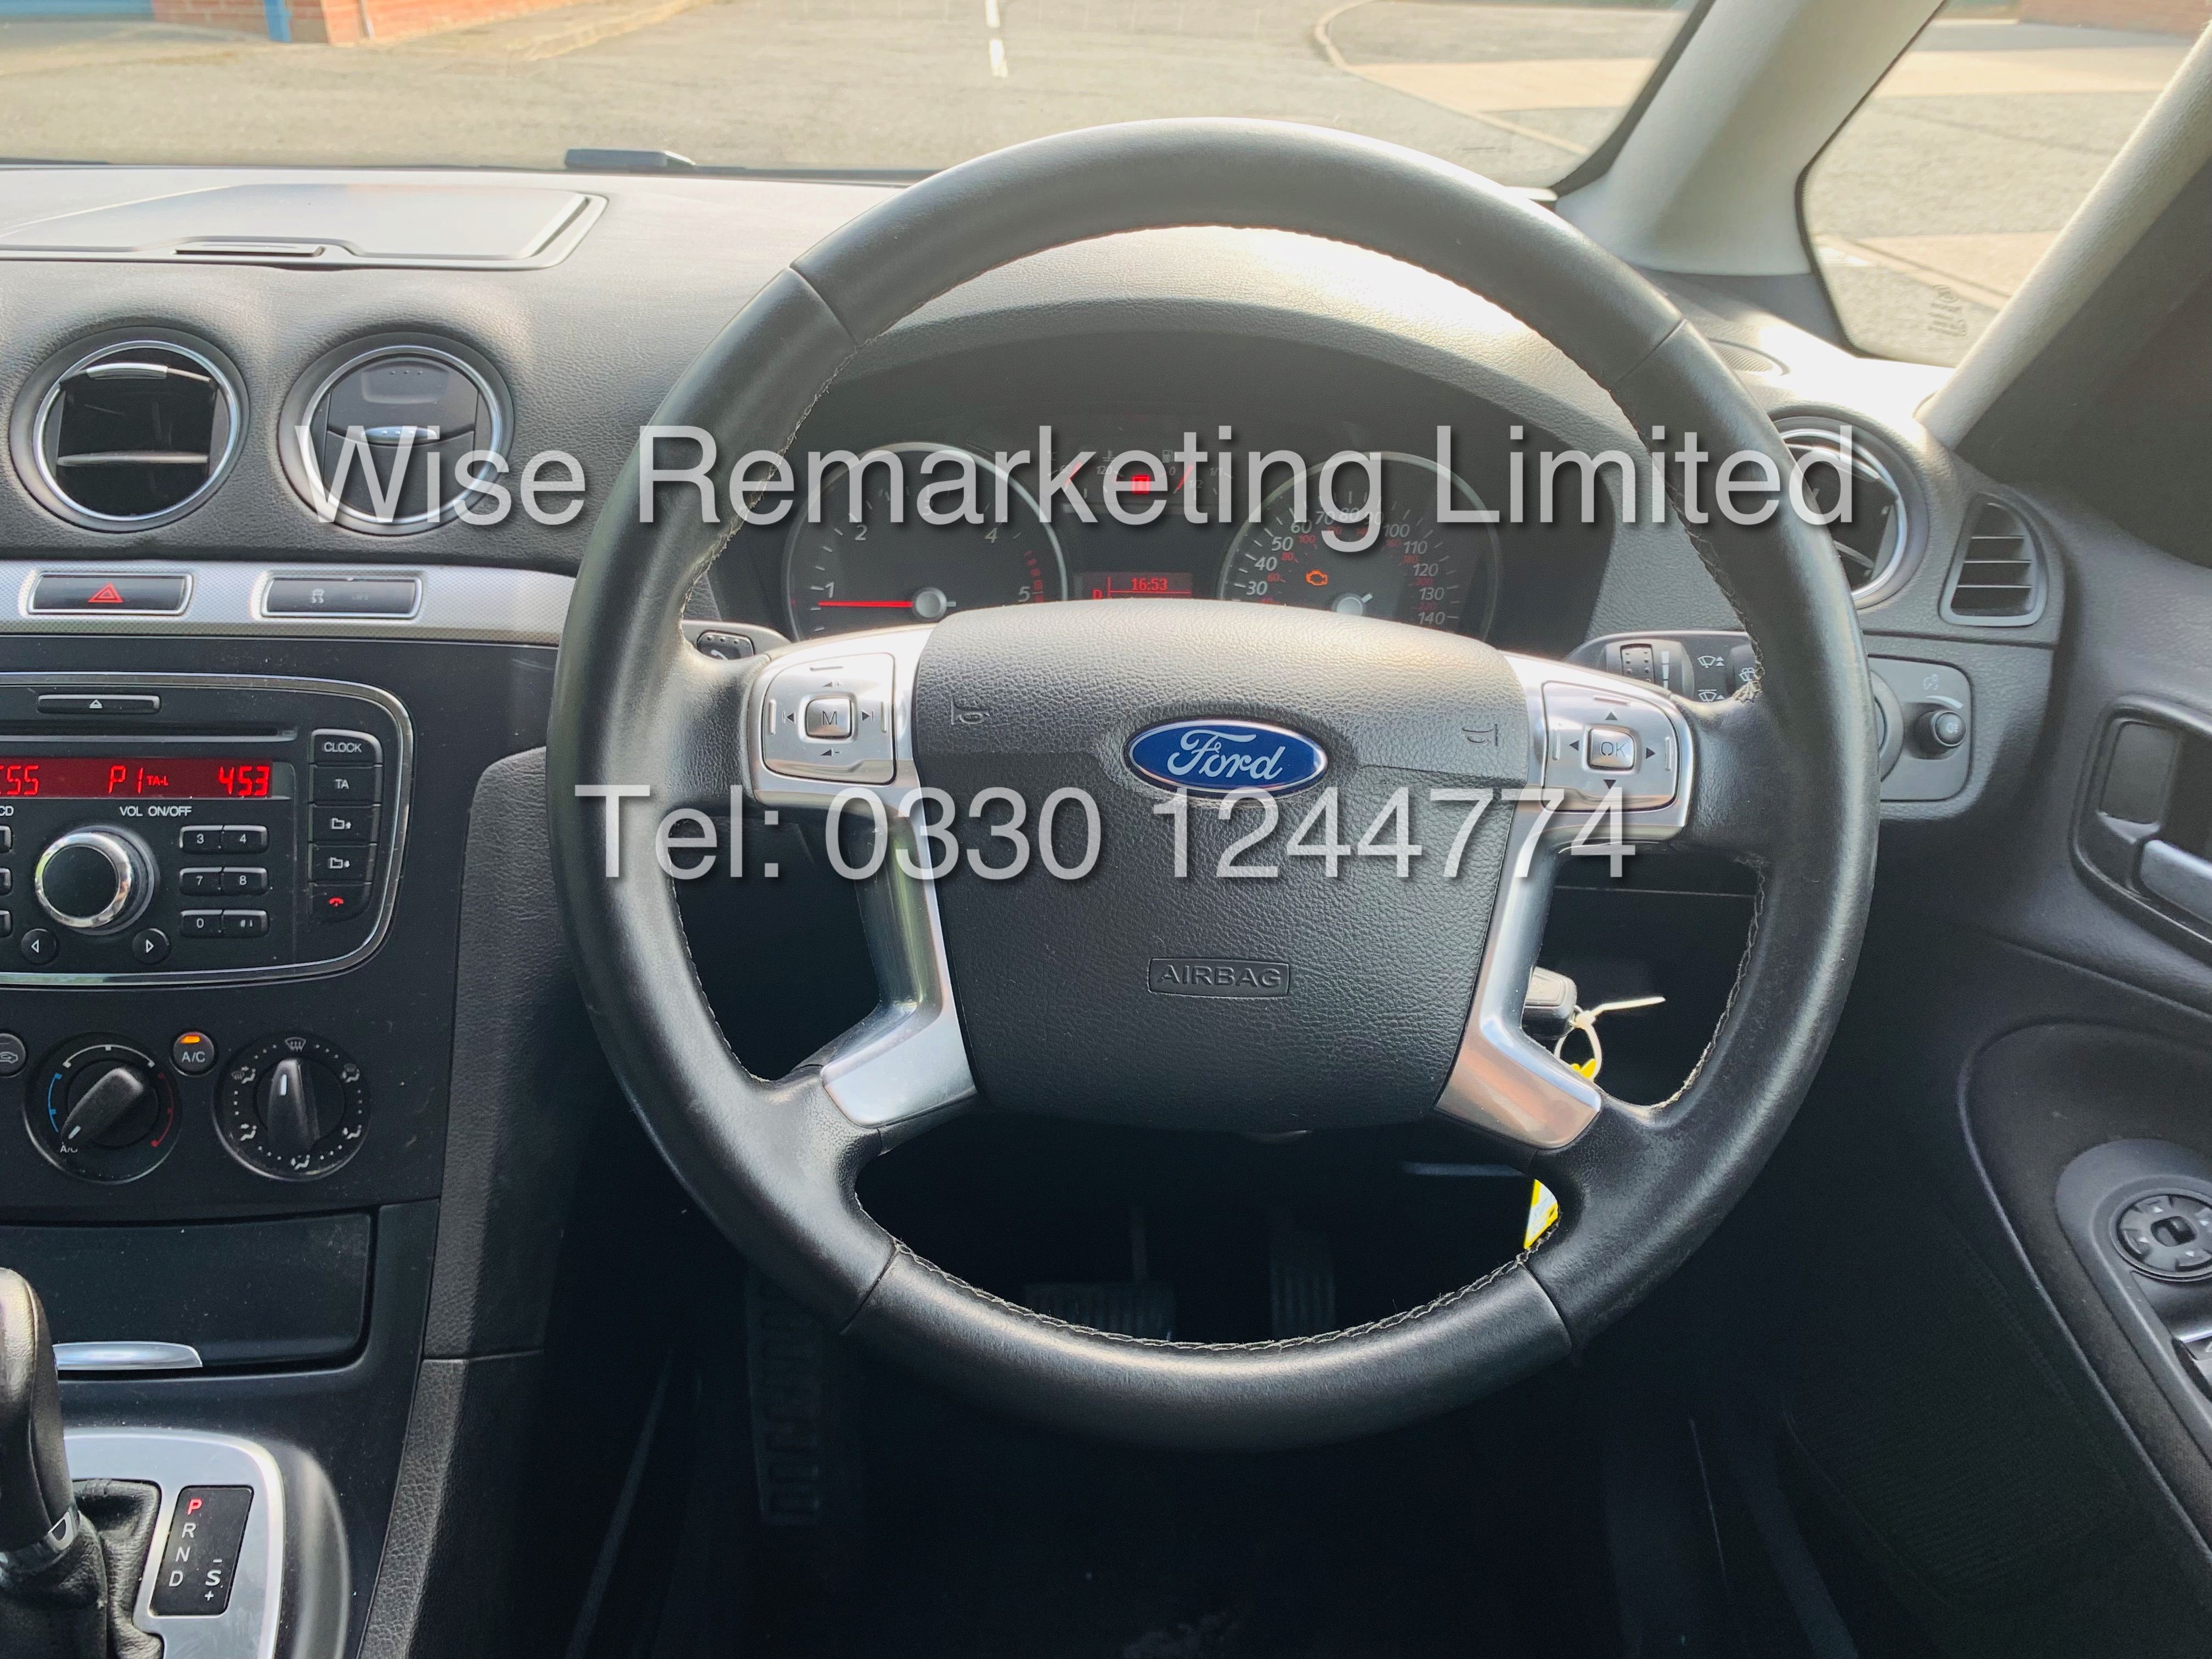 FORD GALAXY ZETEC 2.0L TDCI AUTO 7 SEATER MPV 63 REG *1 OWNER* - Image 19 of 20